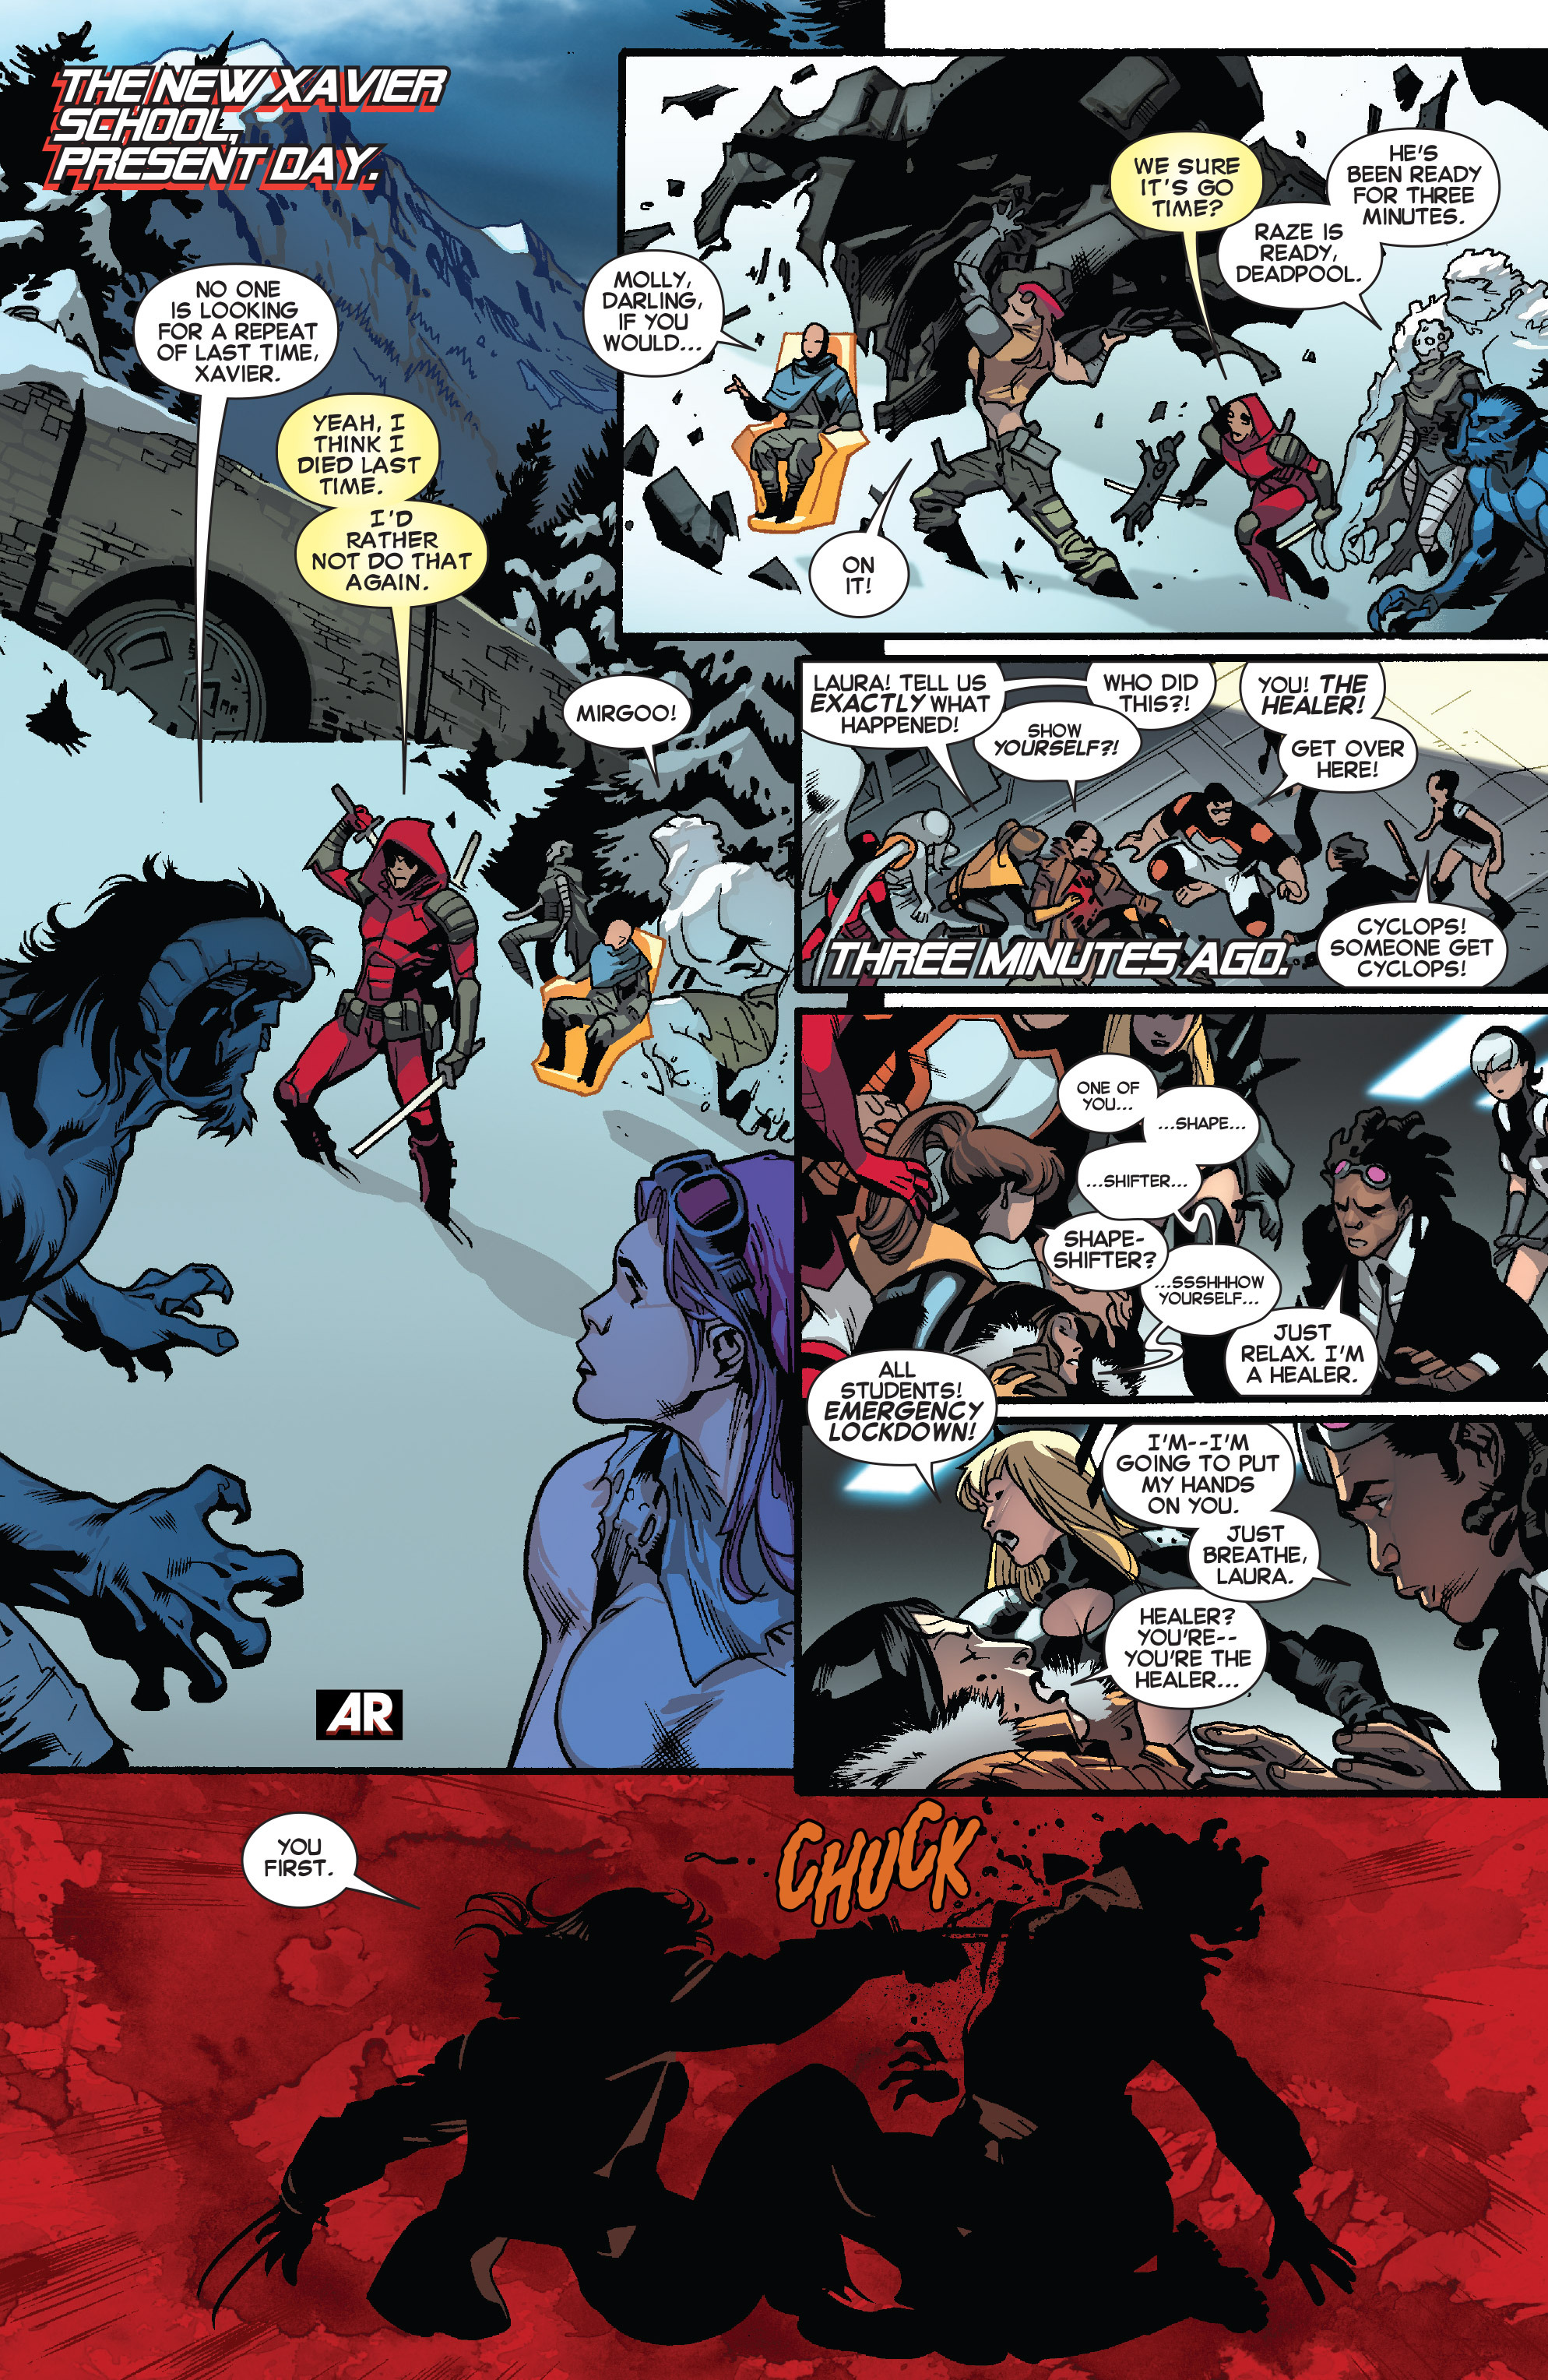 Read online All-New X-Men (2013) comic -  Issue # _Special - One Down - 55